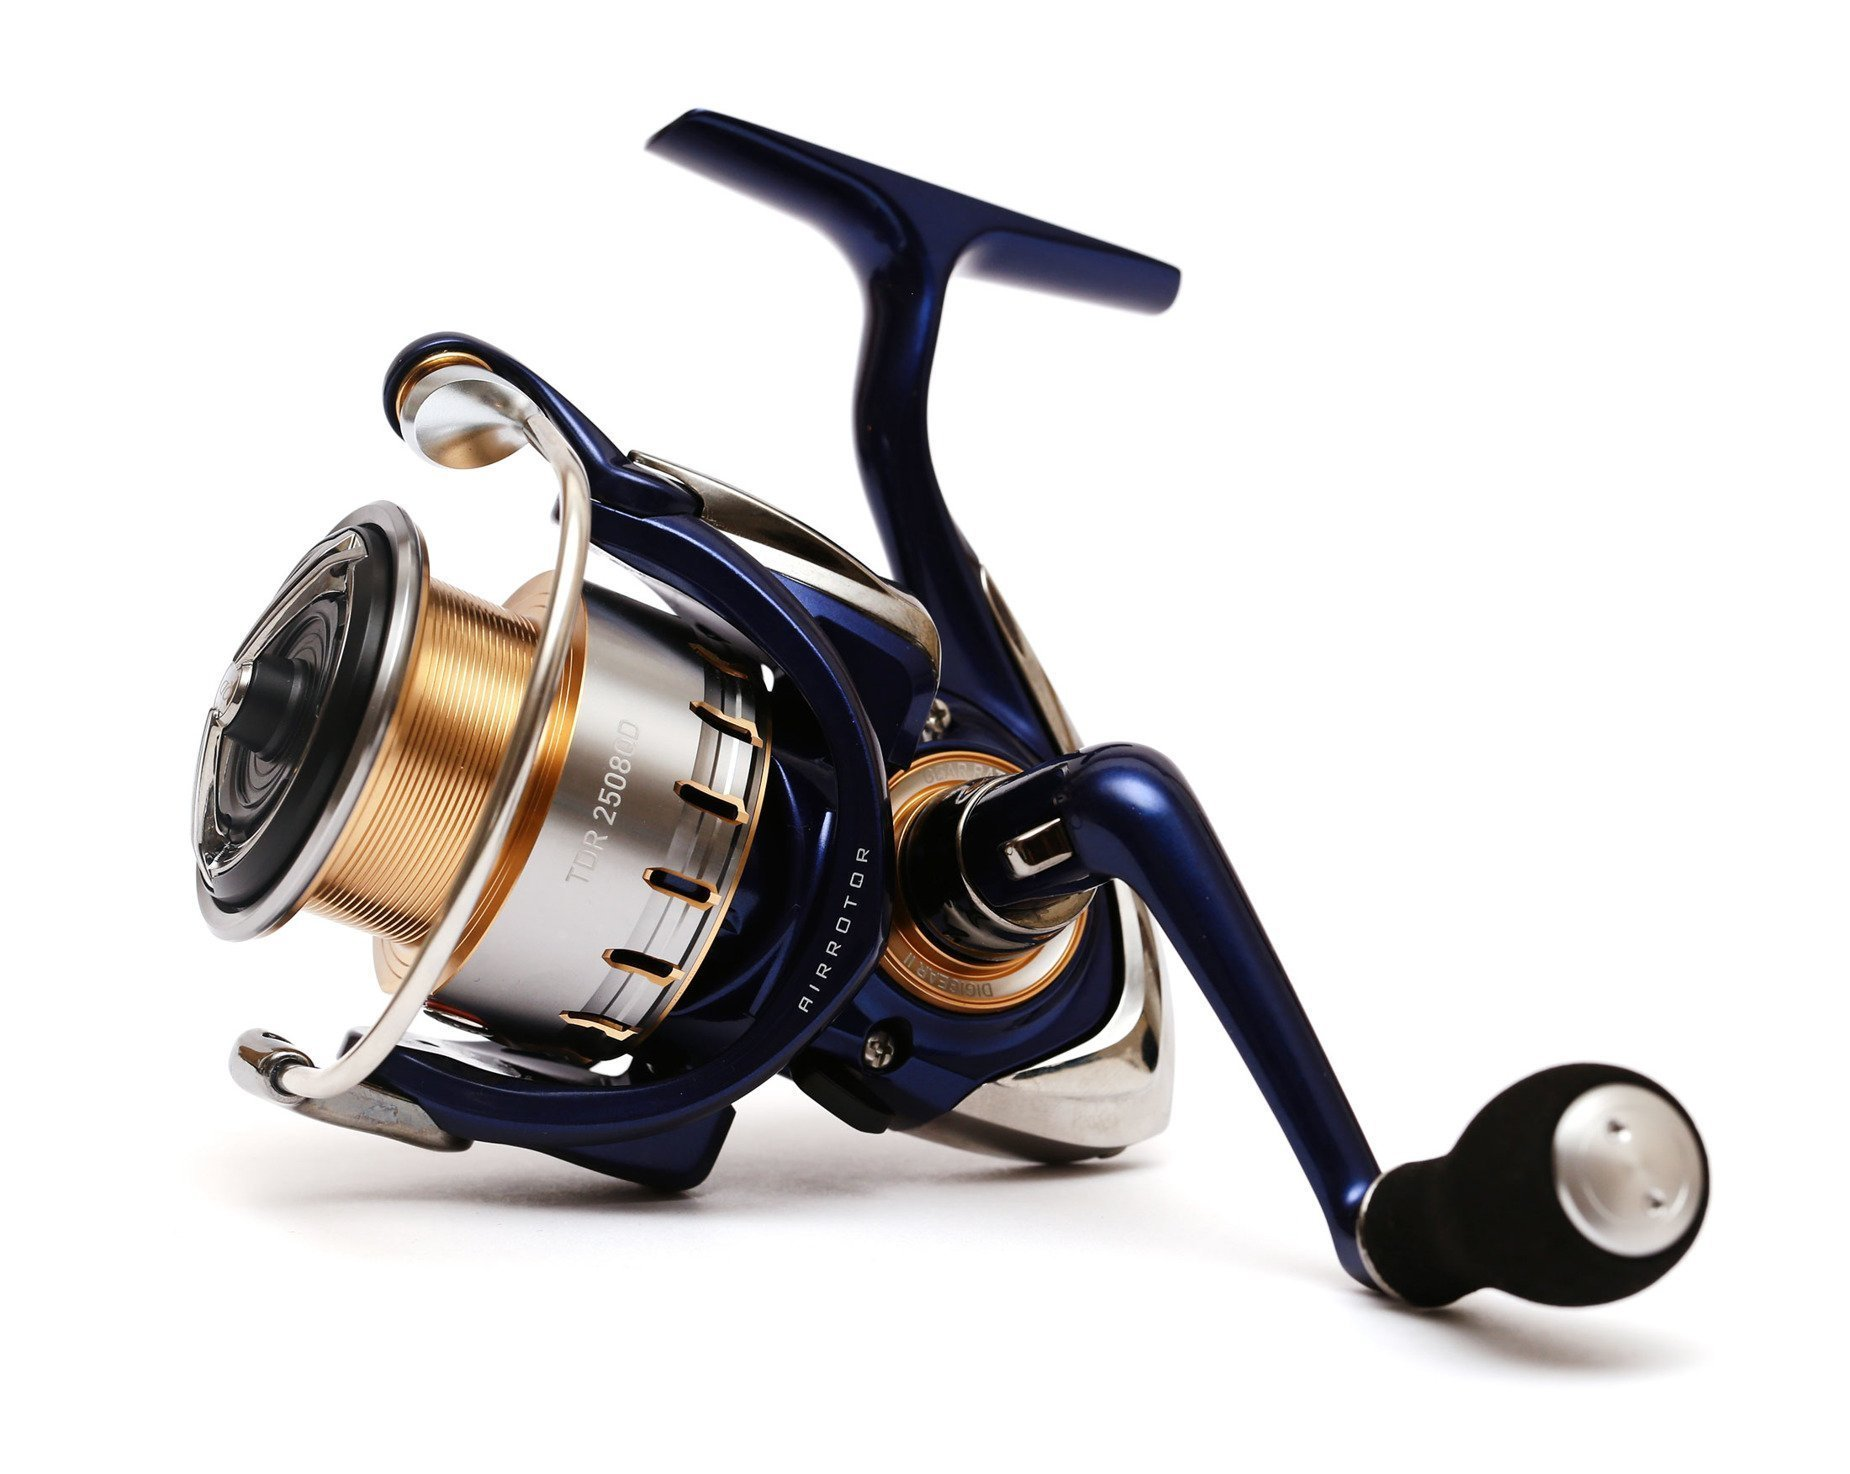 Daiwa TDR Match/Feeder 2508 QD